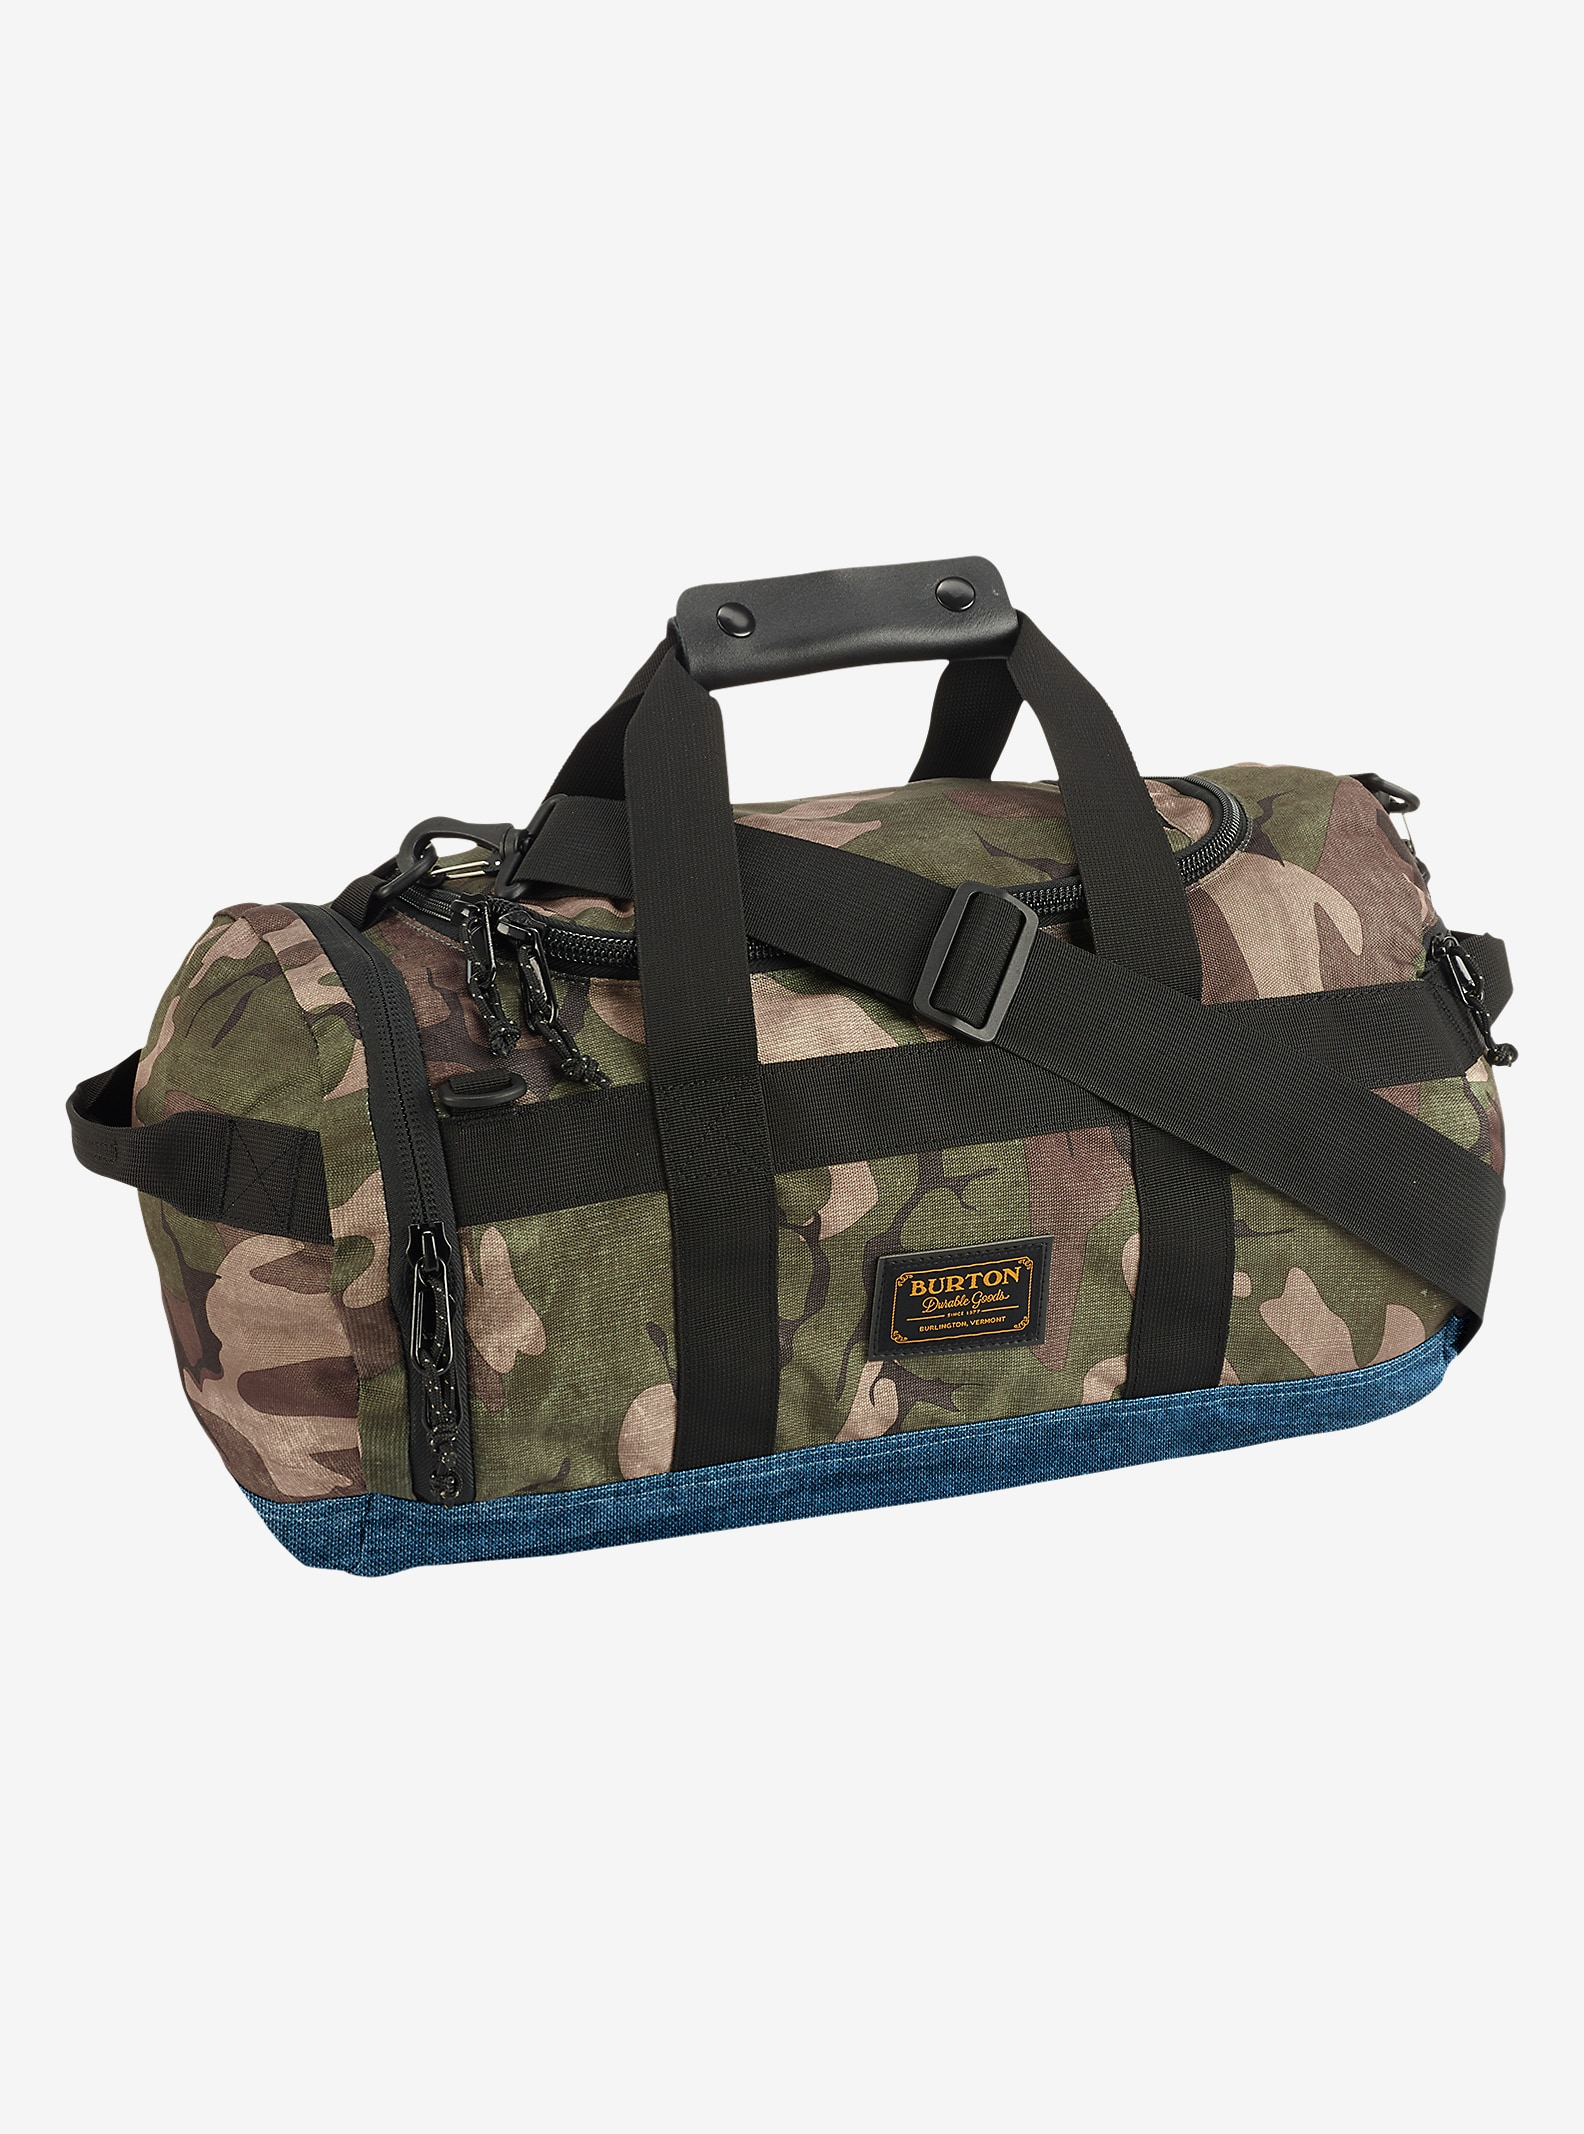 Burton Backhill Duffel Bag X-Small 25L angezeigt in Bkamo Print